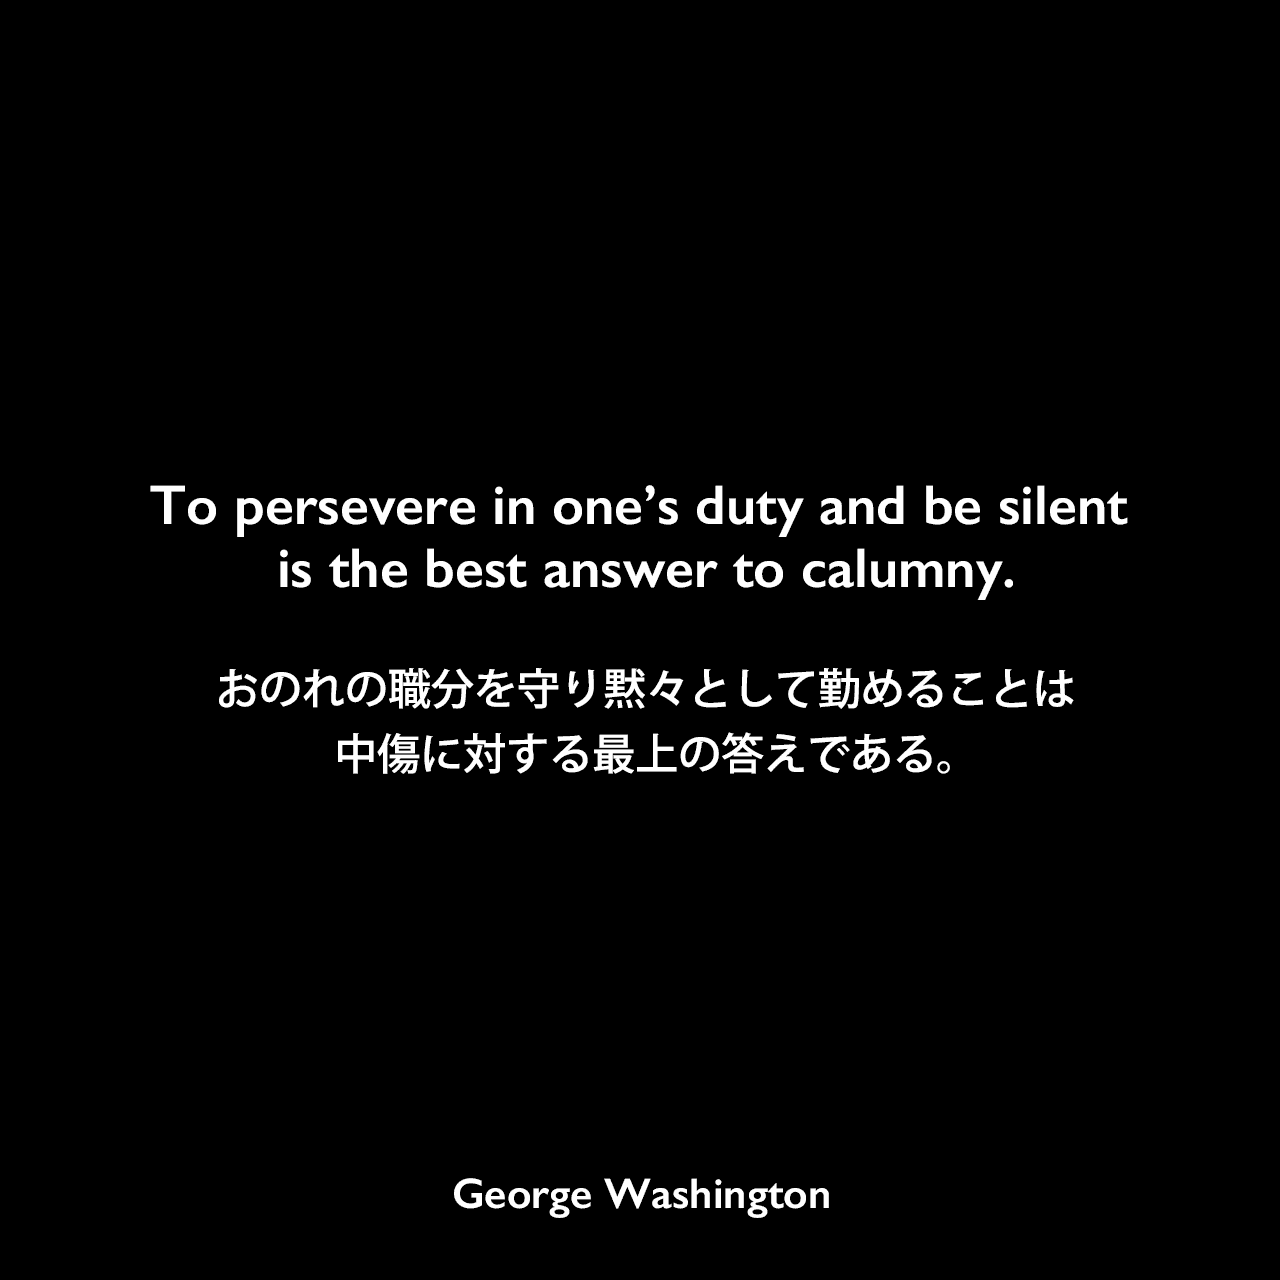 To persevere in one's duty and be silent is the best answer to calumny.おのれの職分を守り黙々として勤めることは、中傷に対する最上の答えである。George Washington